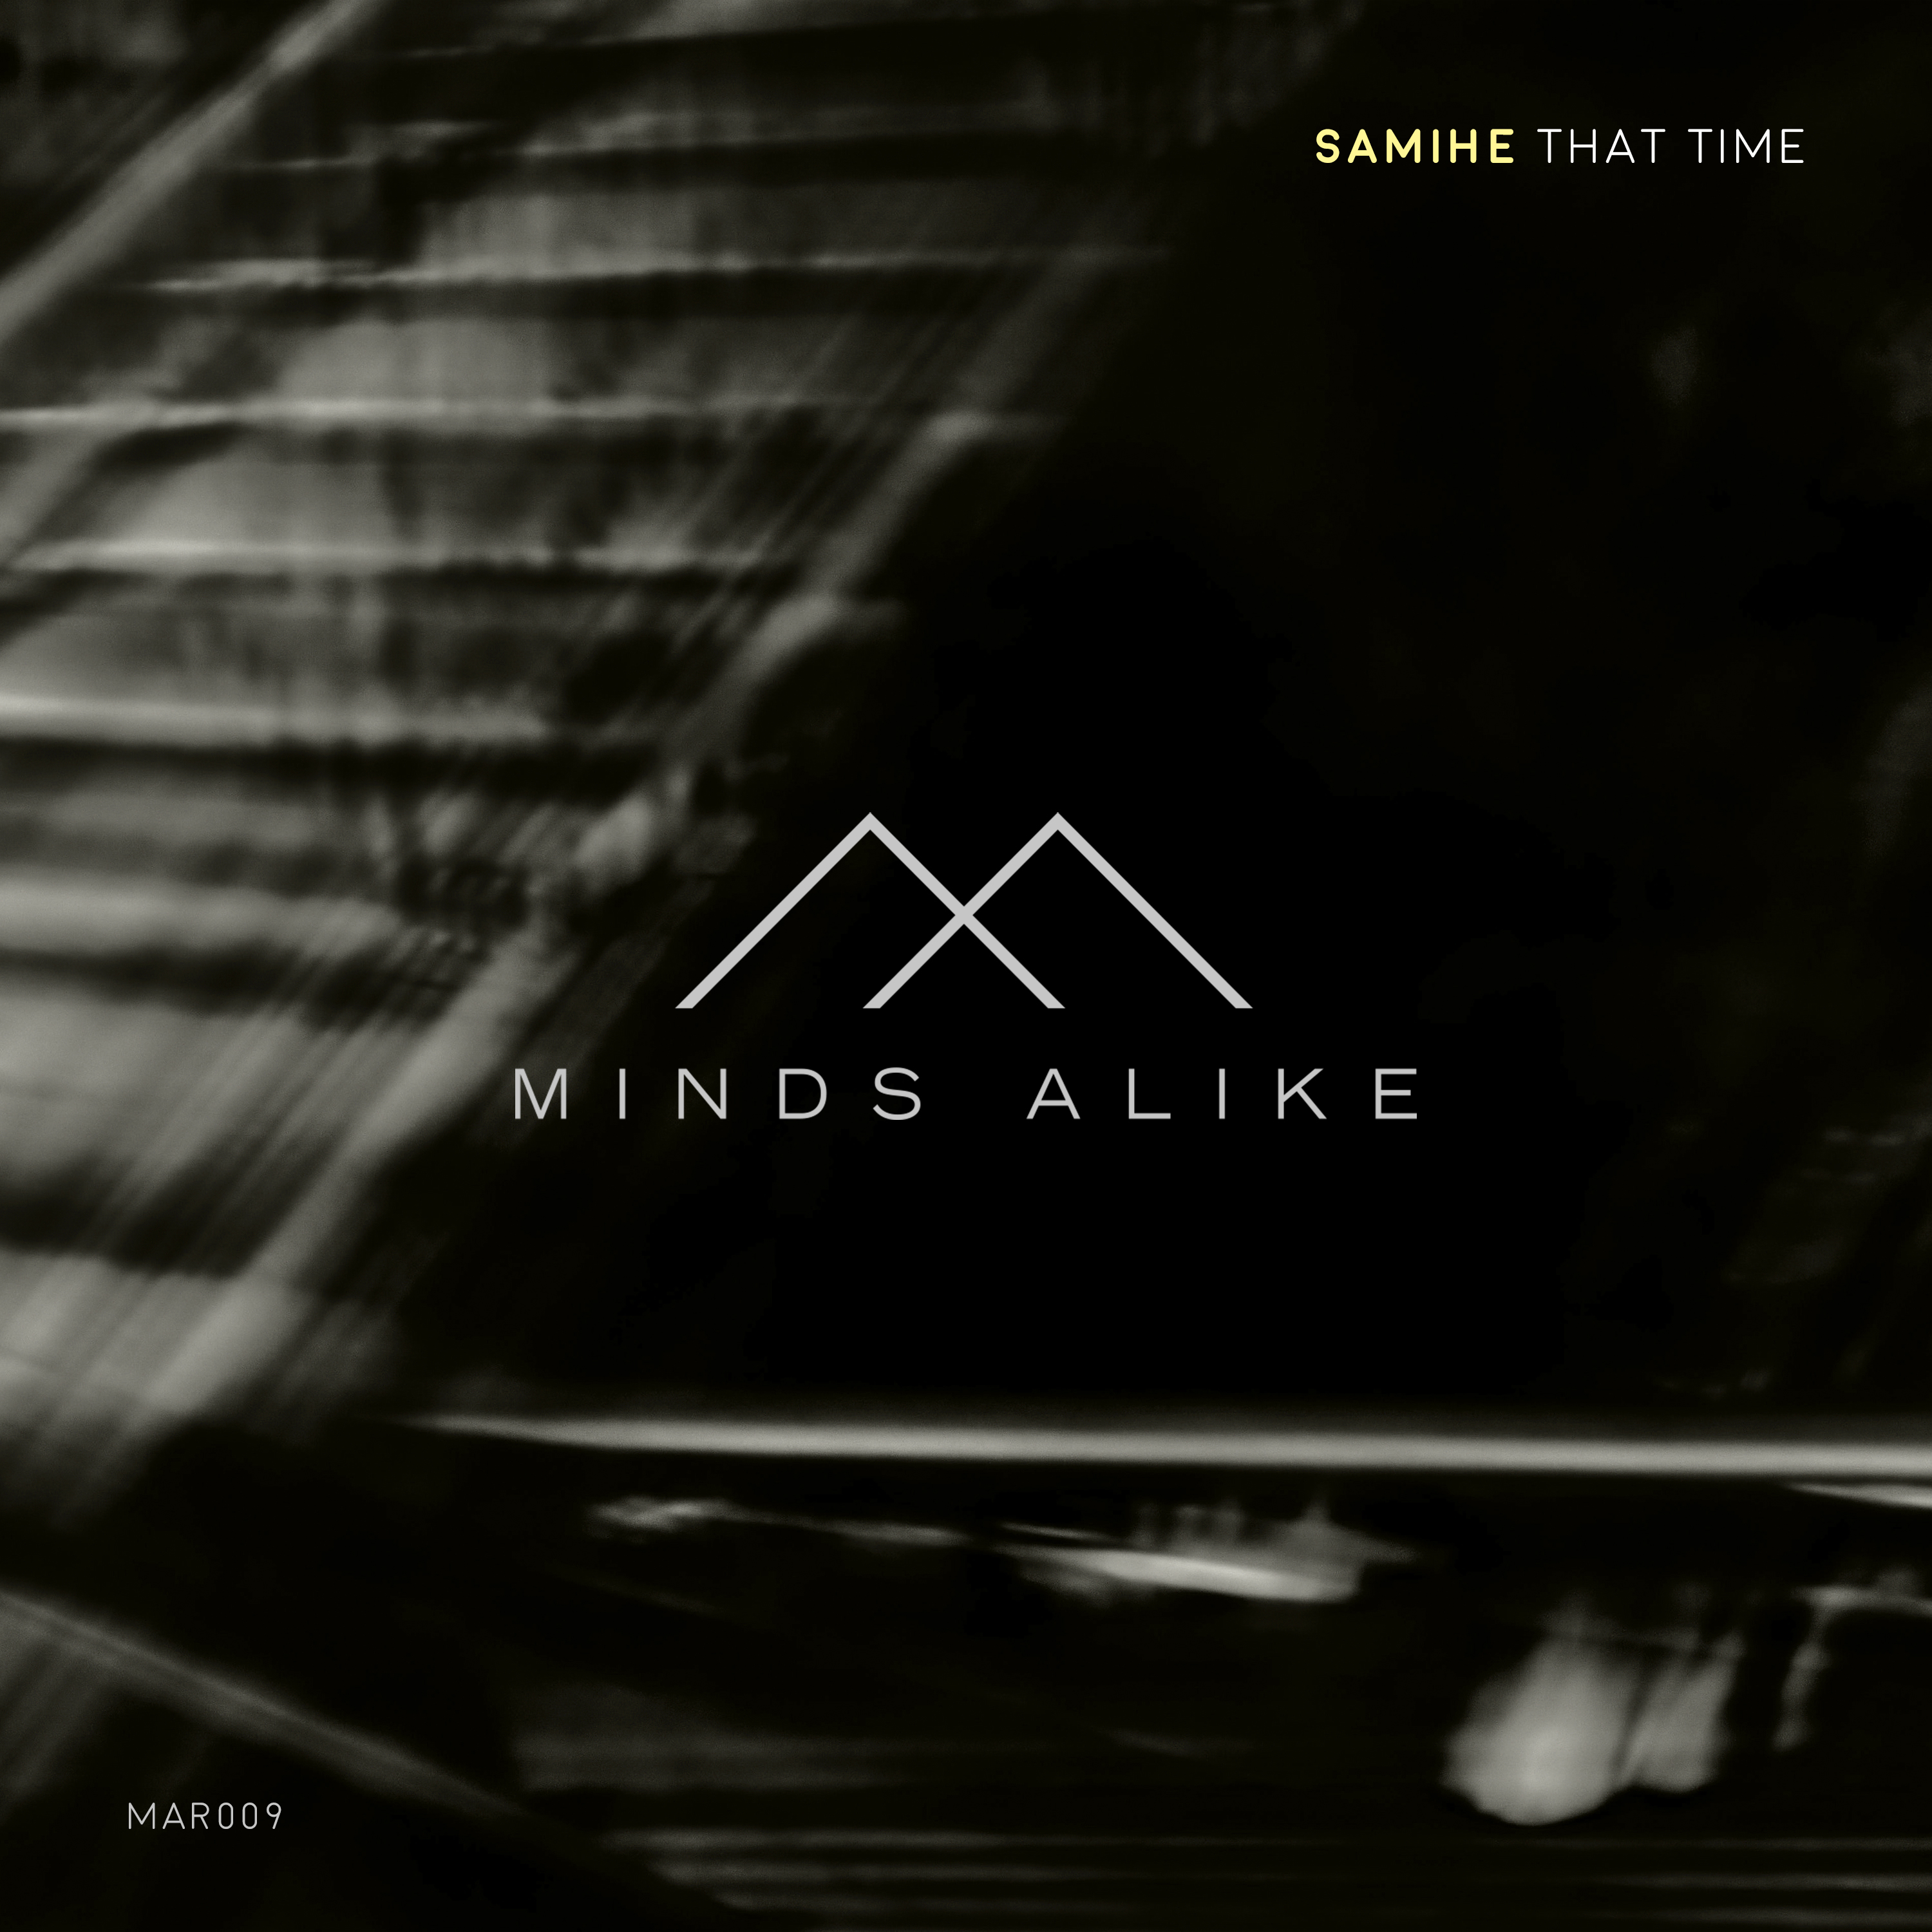 That Time from Minds Alike on Beatport Image